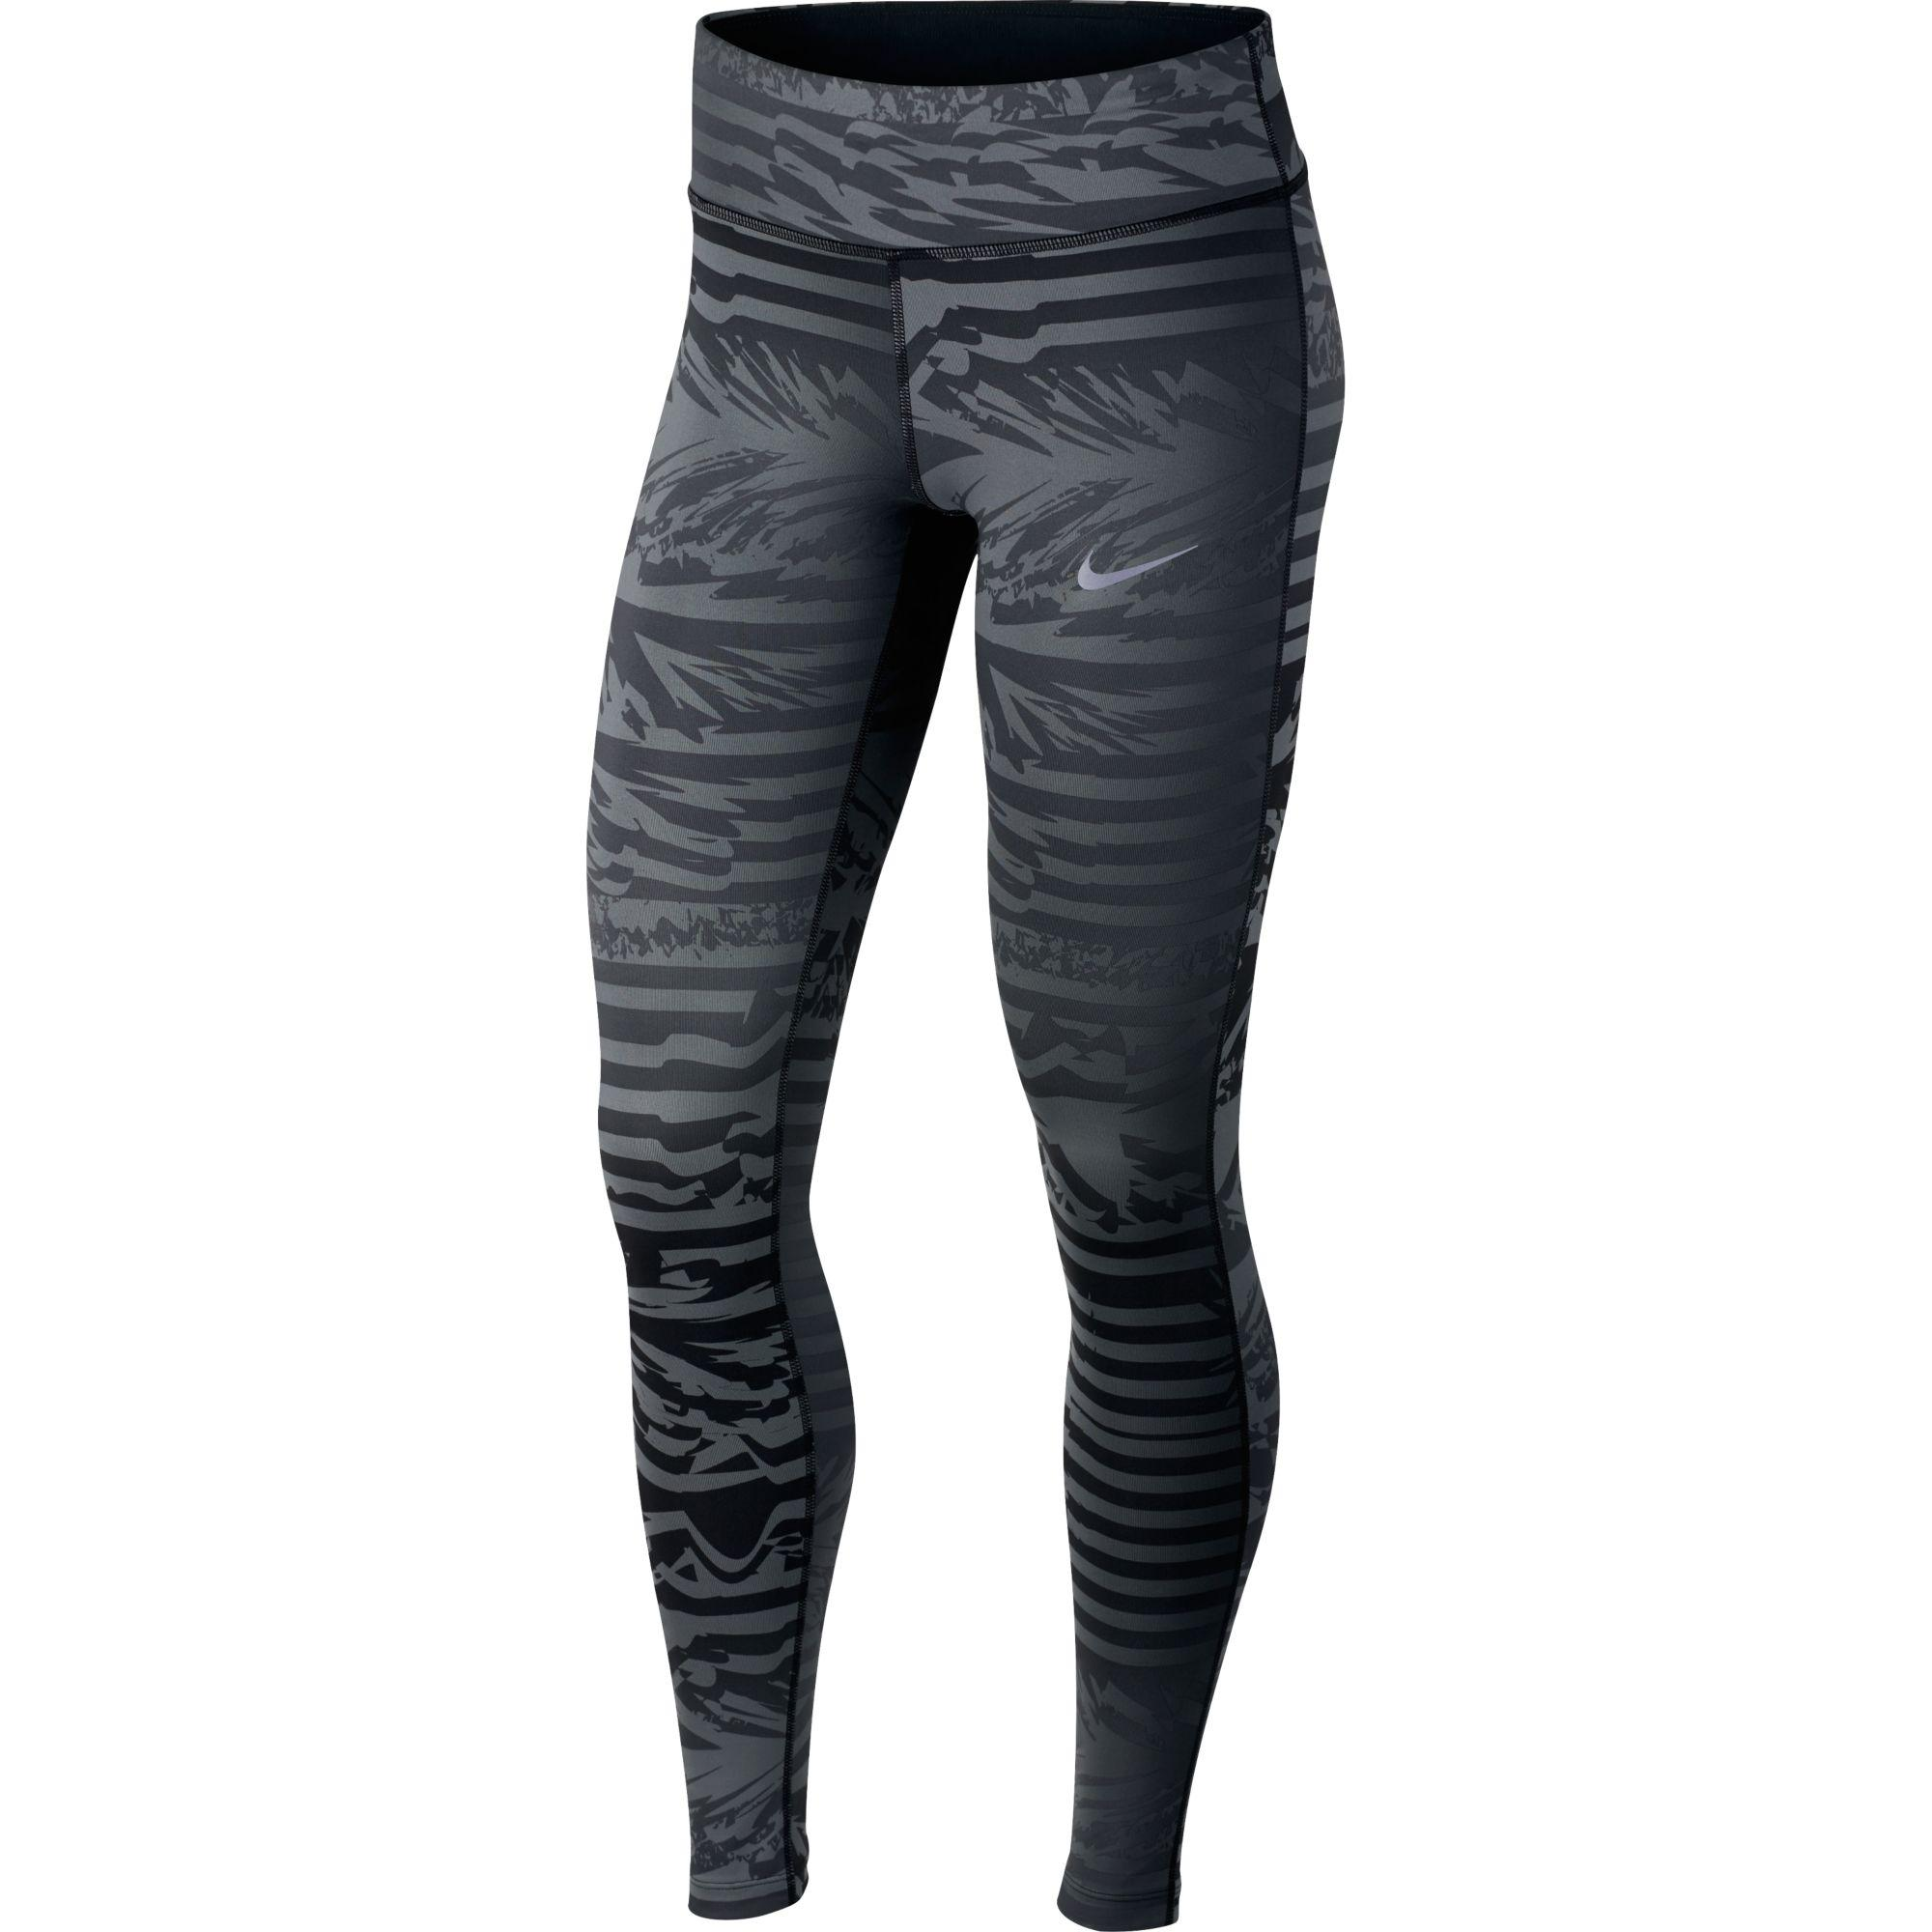 81ca6c76fb Nike Pantalone Nike Power Essential Running Tights Donna